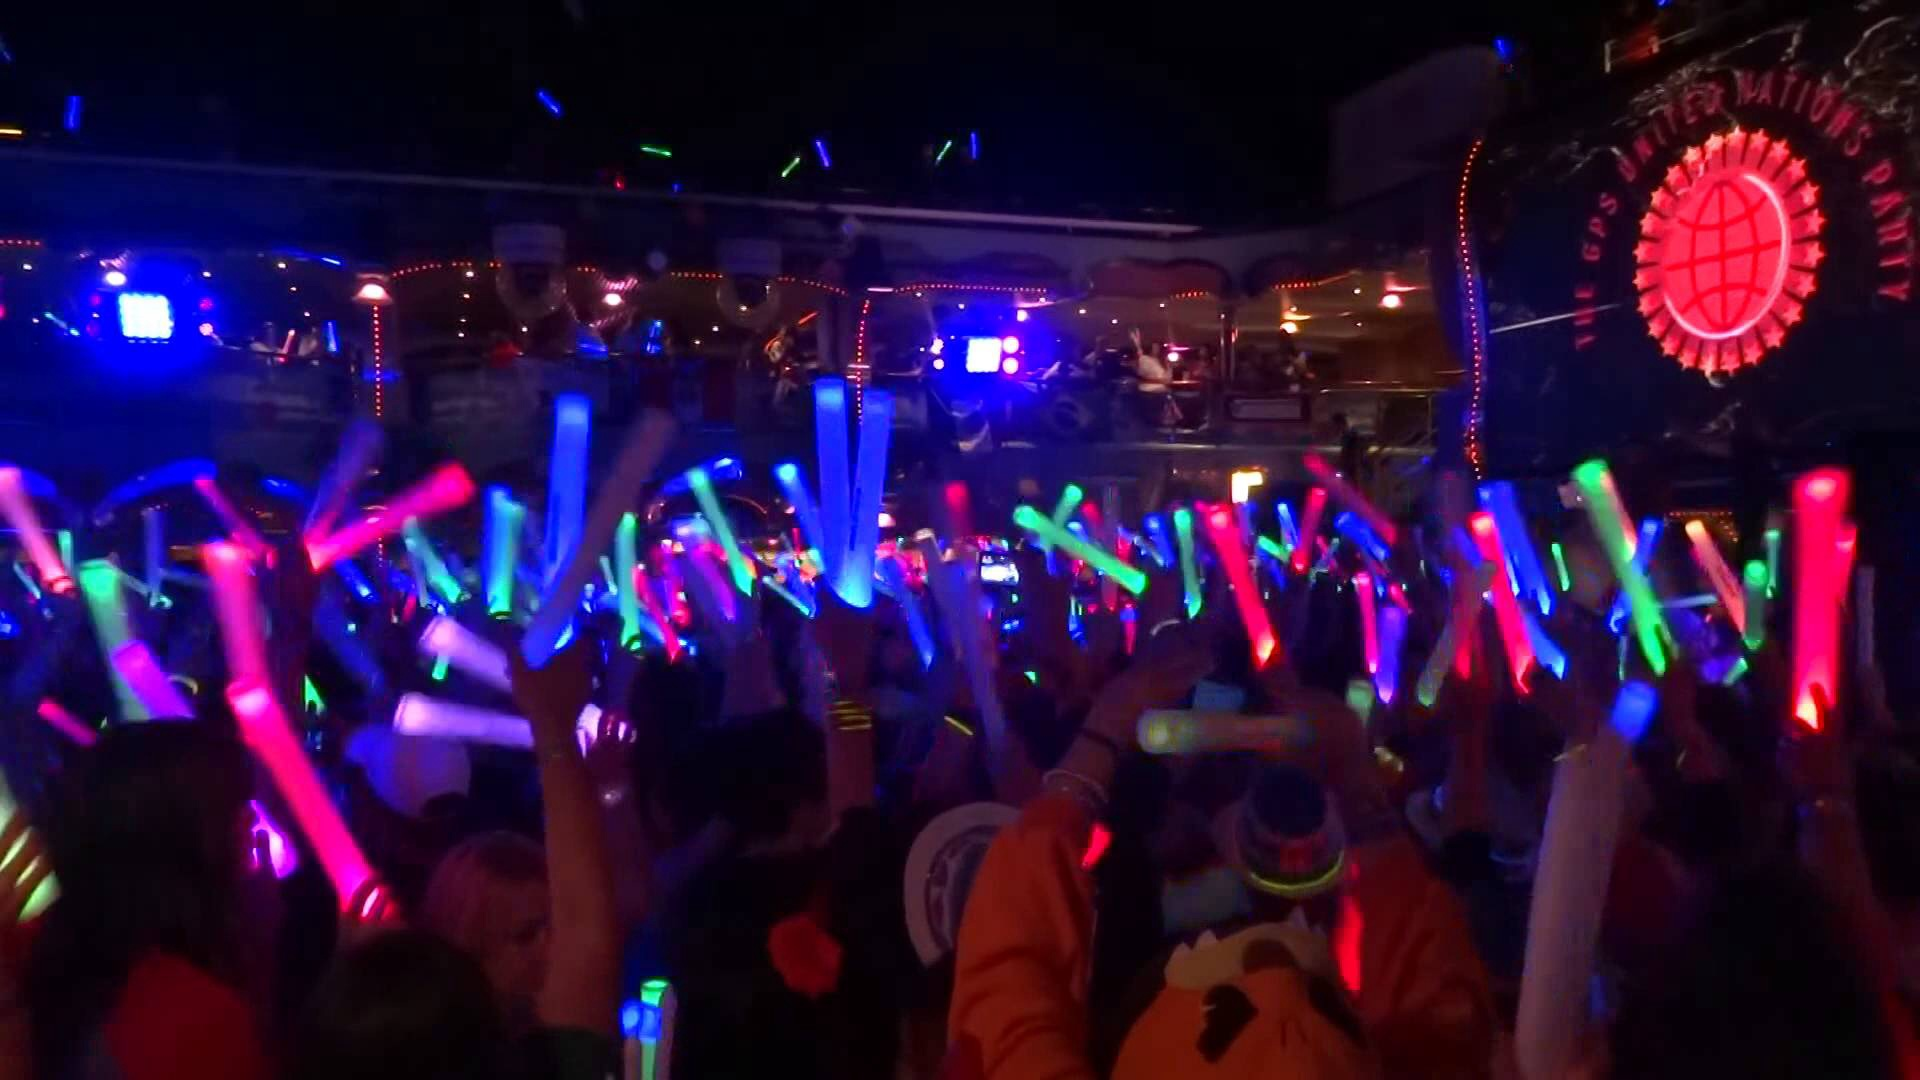 Glow-stick-party-glowsticks-39566519-1920-1080.jpg